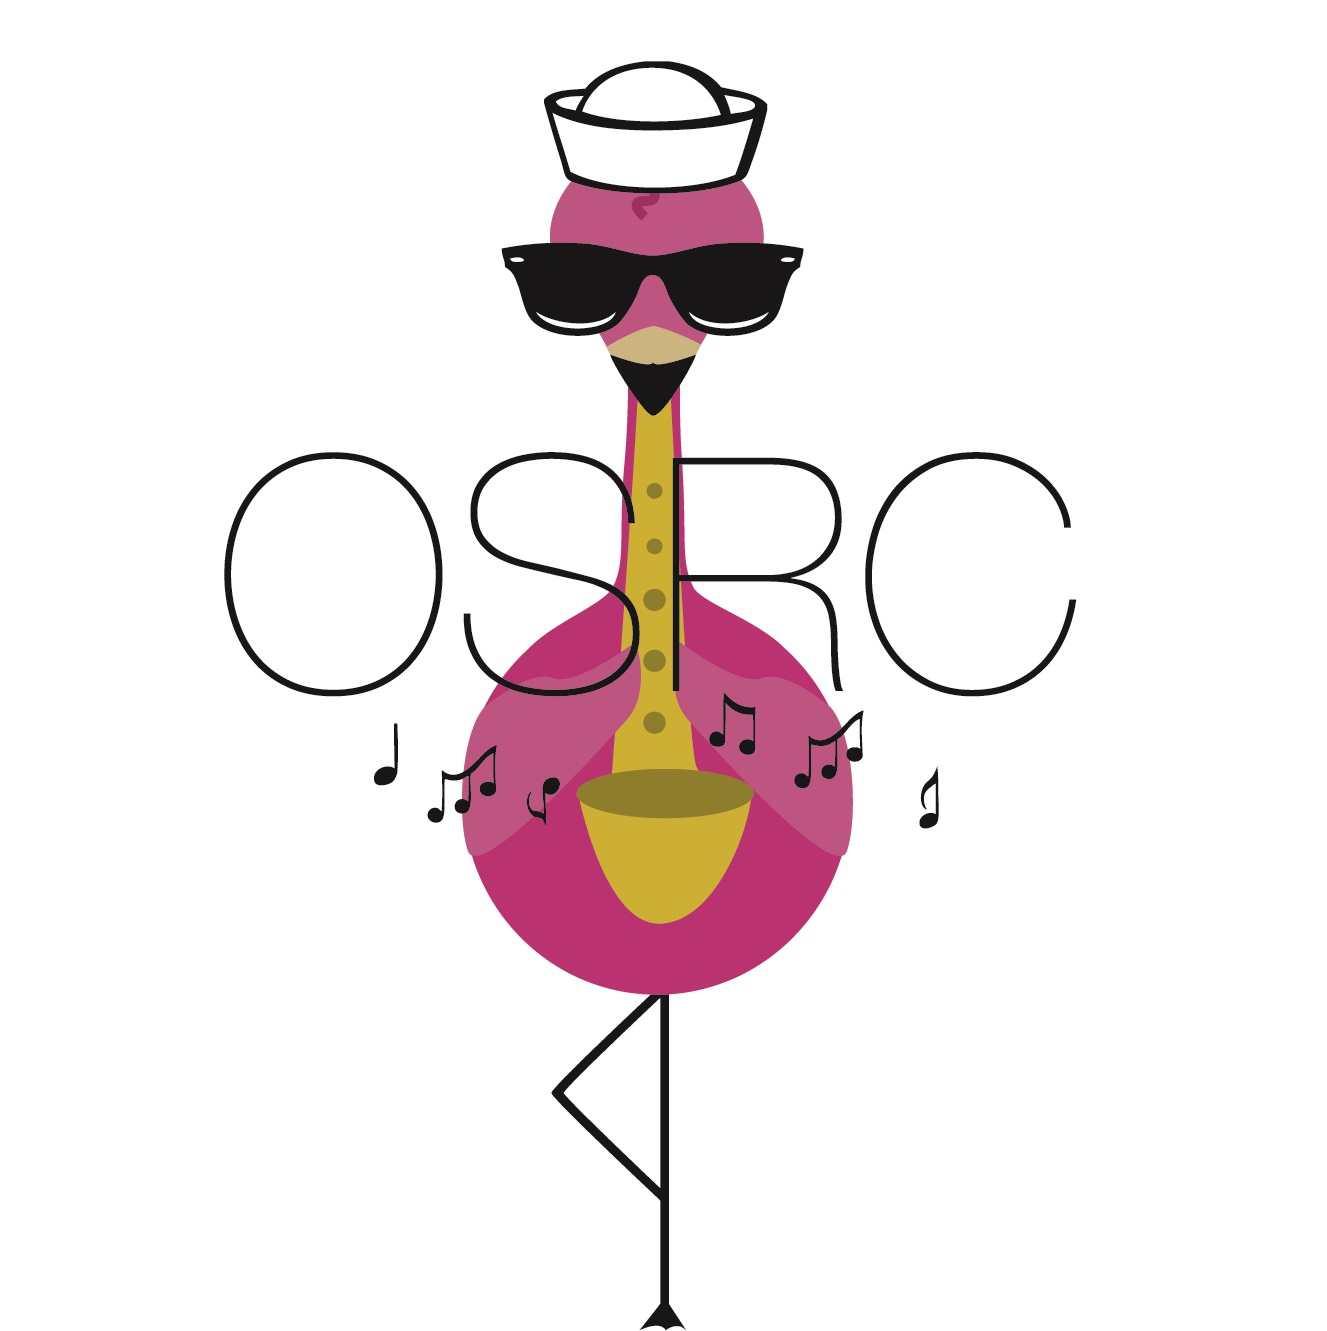 OSRC Flamingo_no_ext